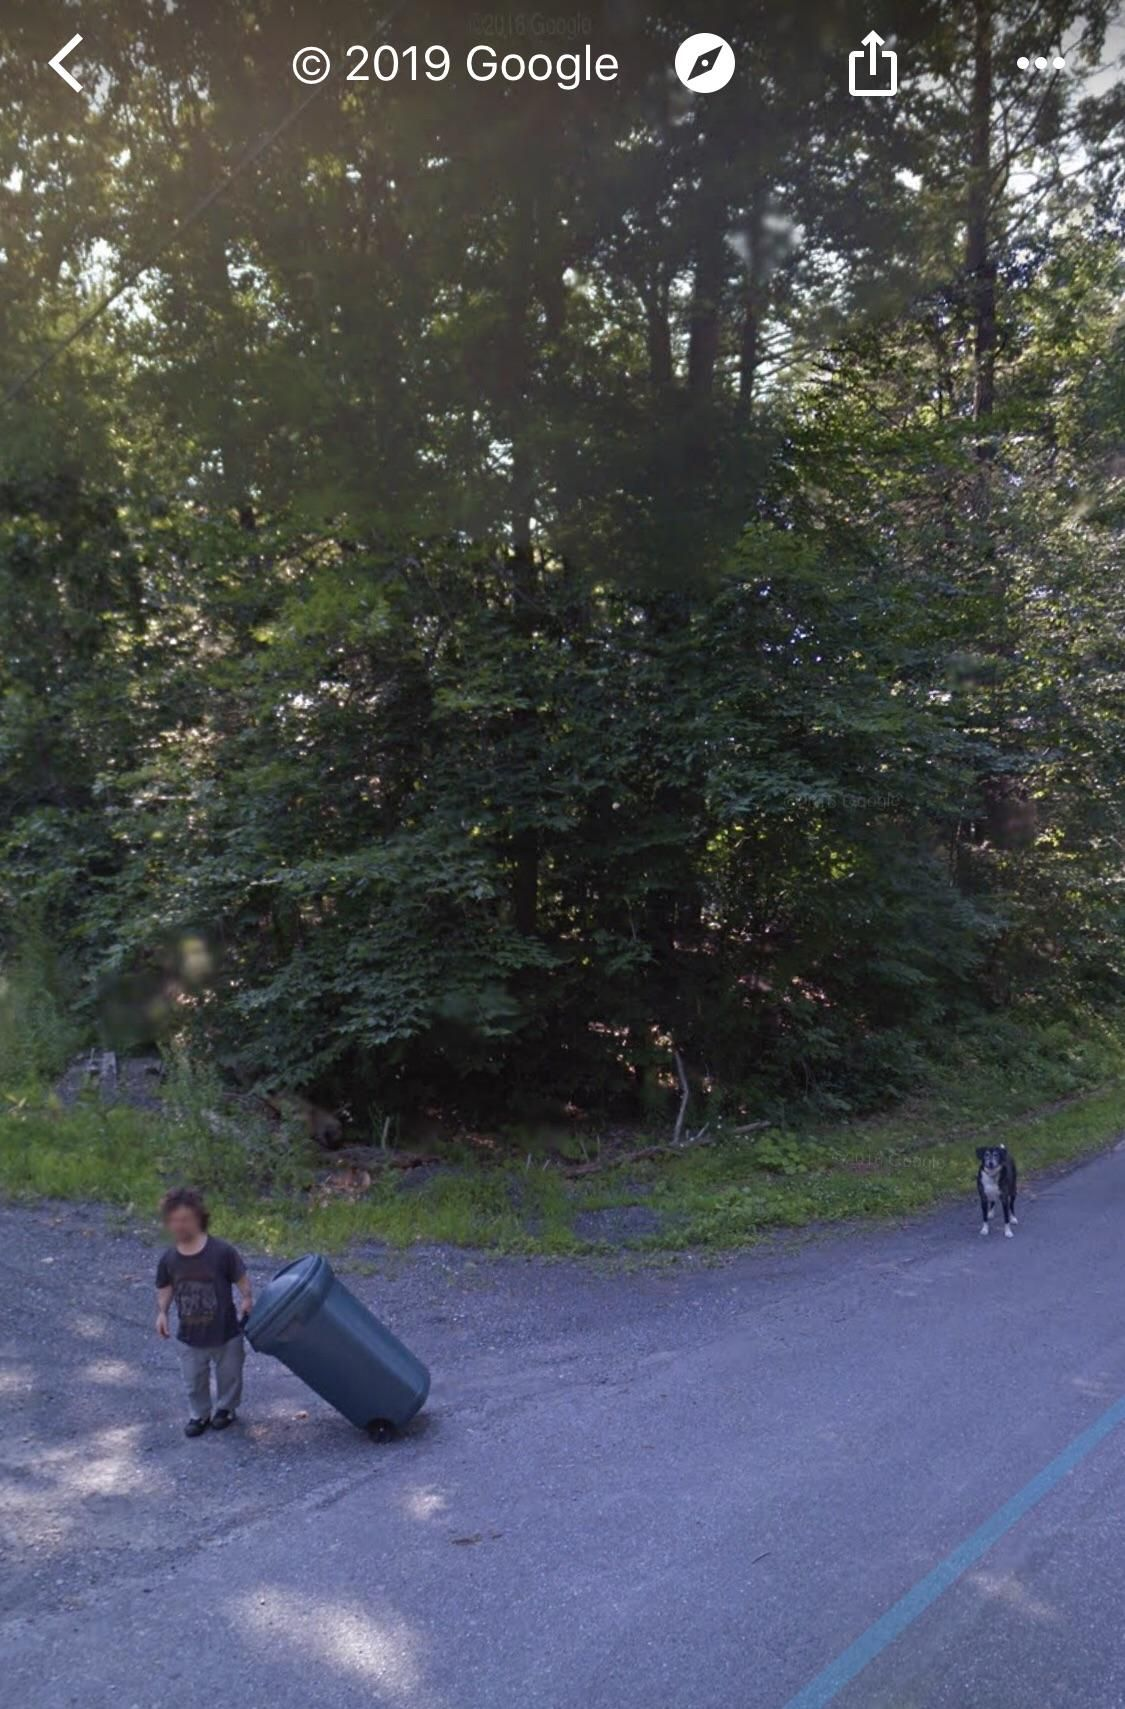 Did I just stumble across Peter Dinklage taking out the trash on Google Earth?!